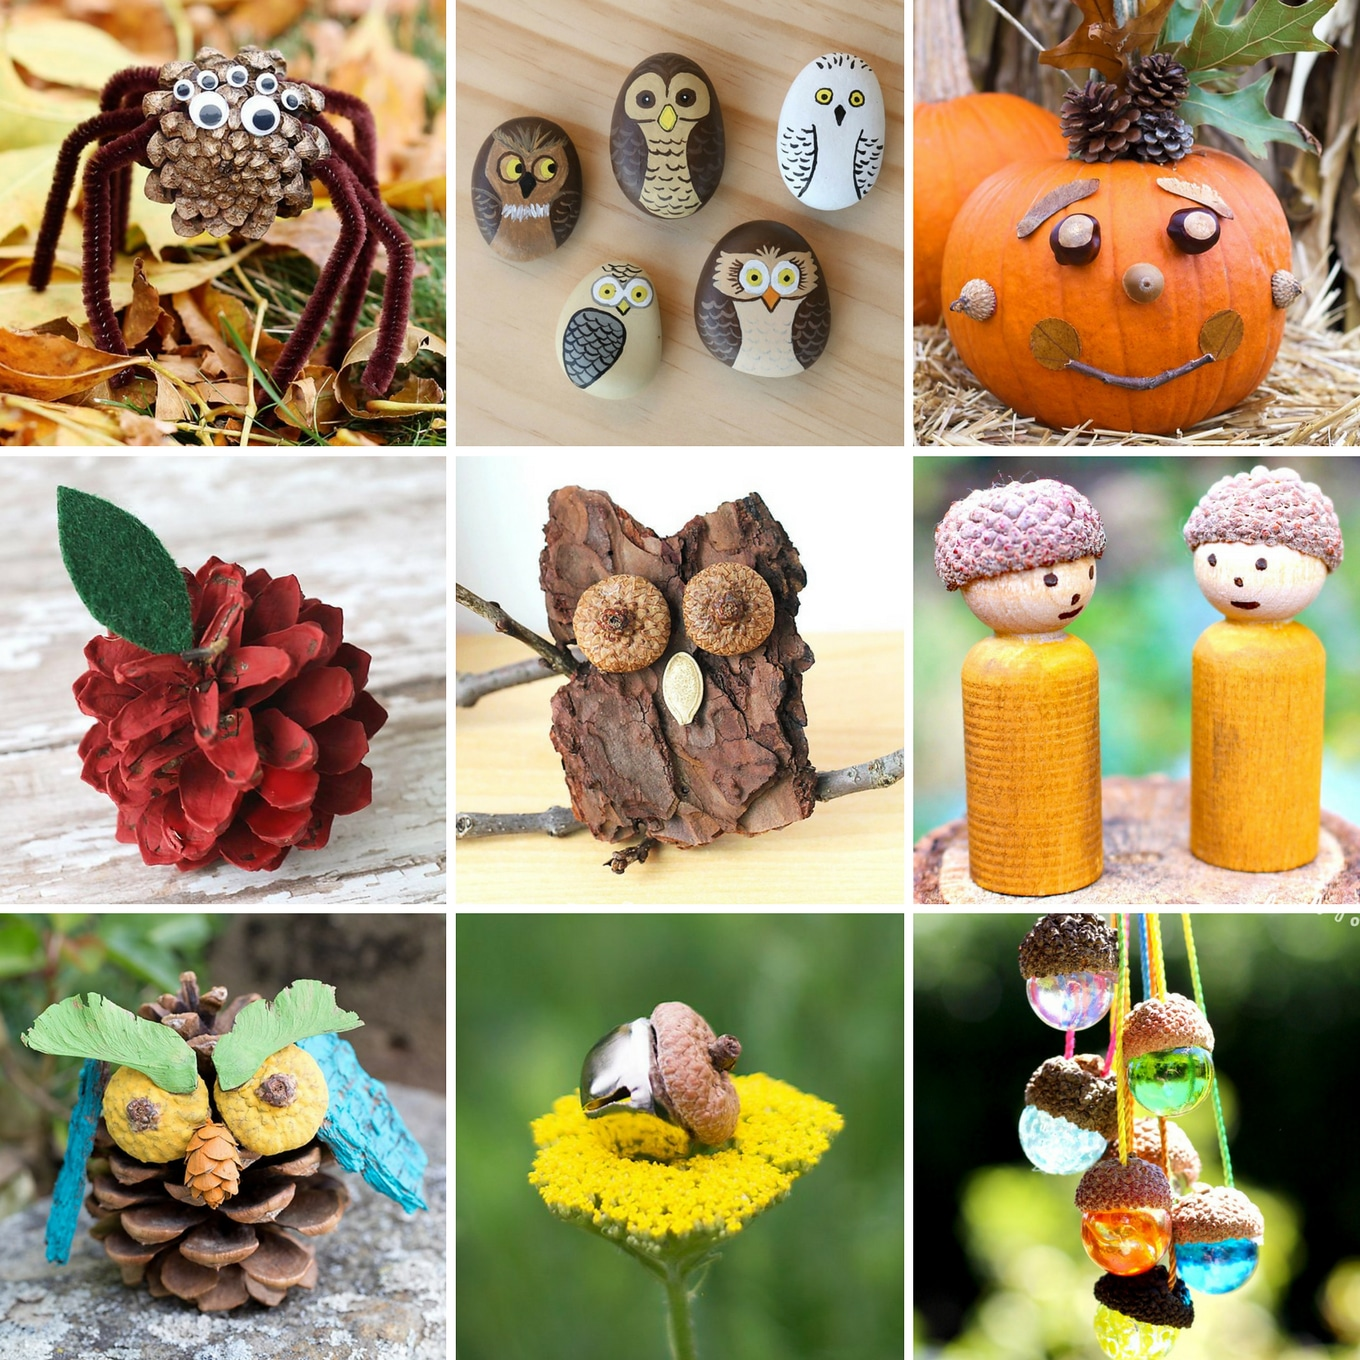 25 Beautiful Fall Nature Crafts For Kids